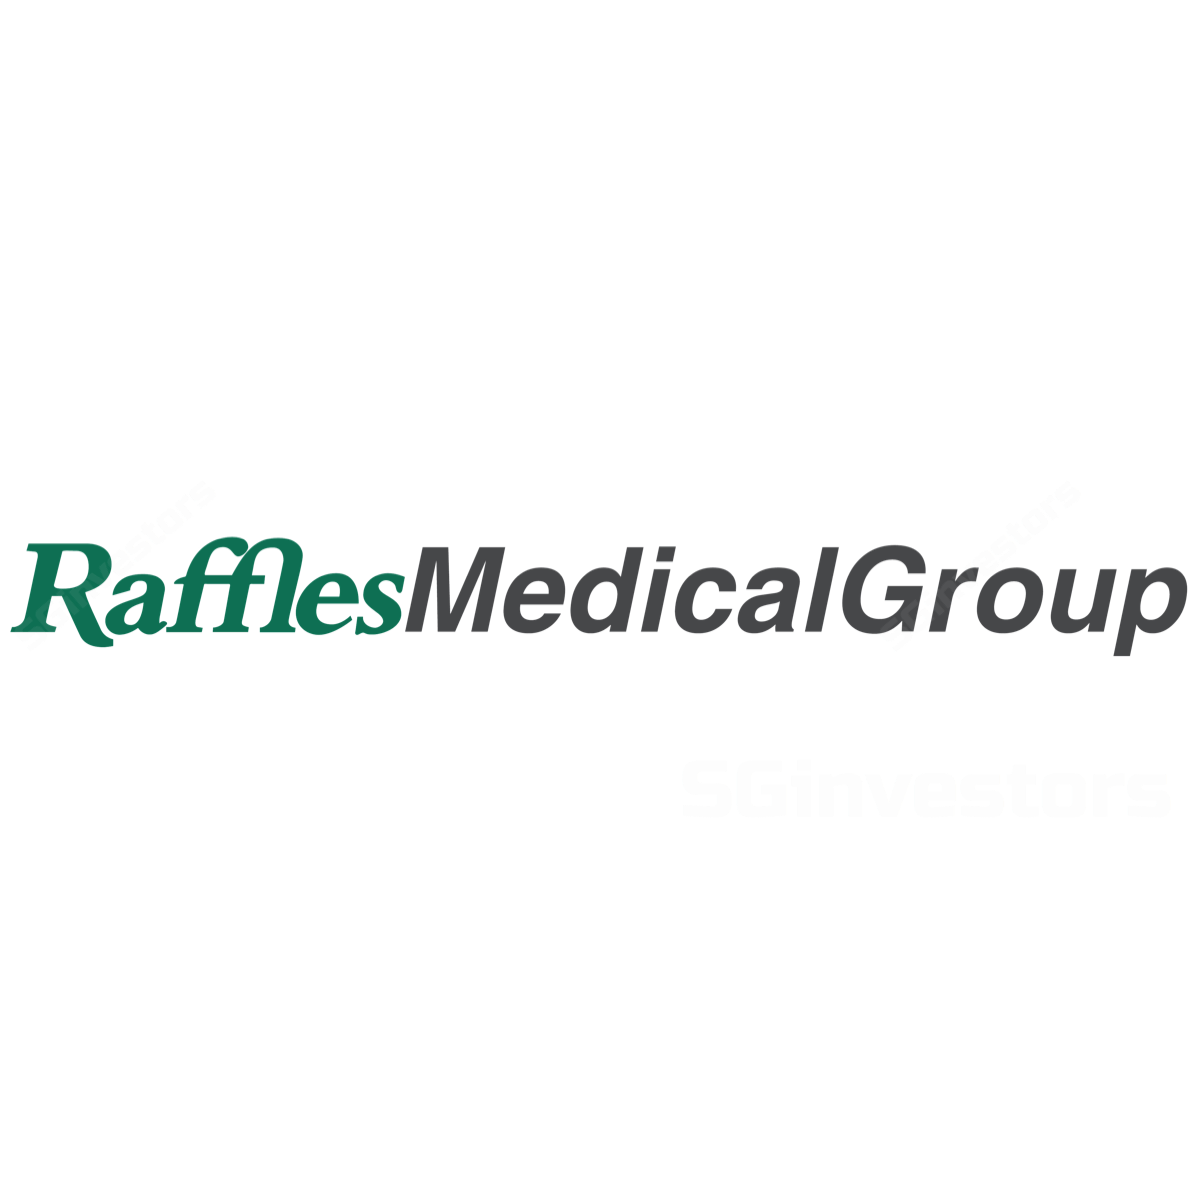 Raffles Medical Group Ltd - Phillip Securities 2018-02-27: New Capacity To Fuel Growth